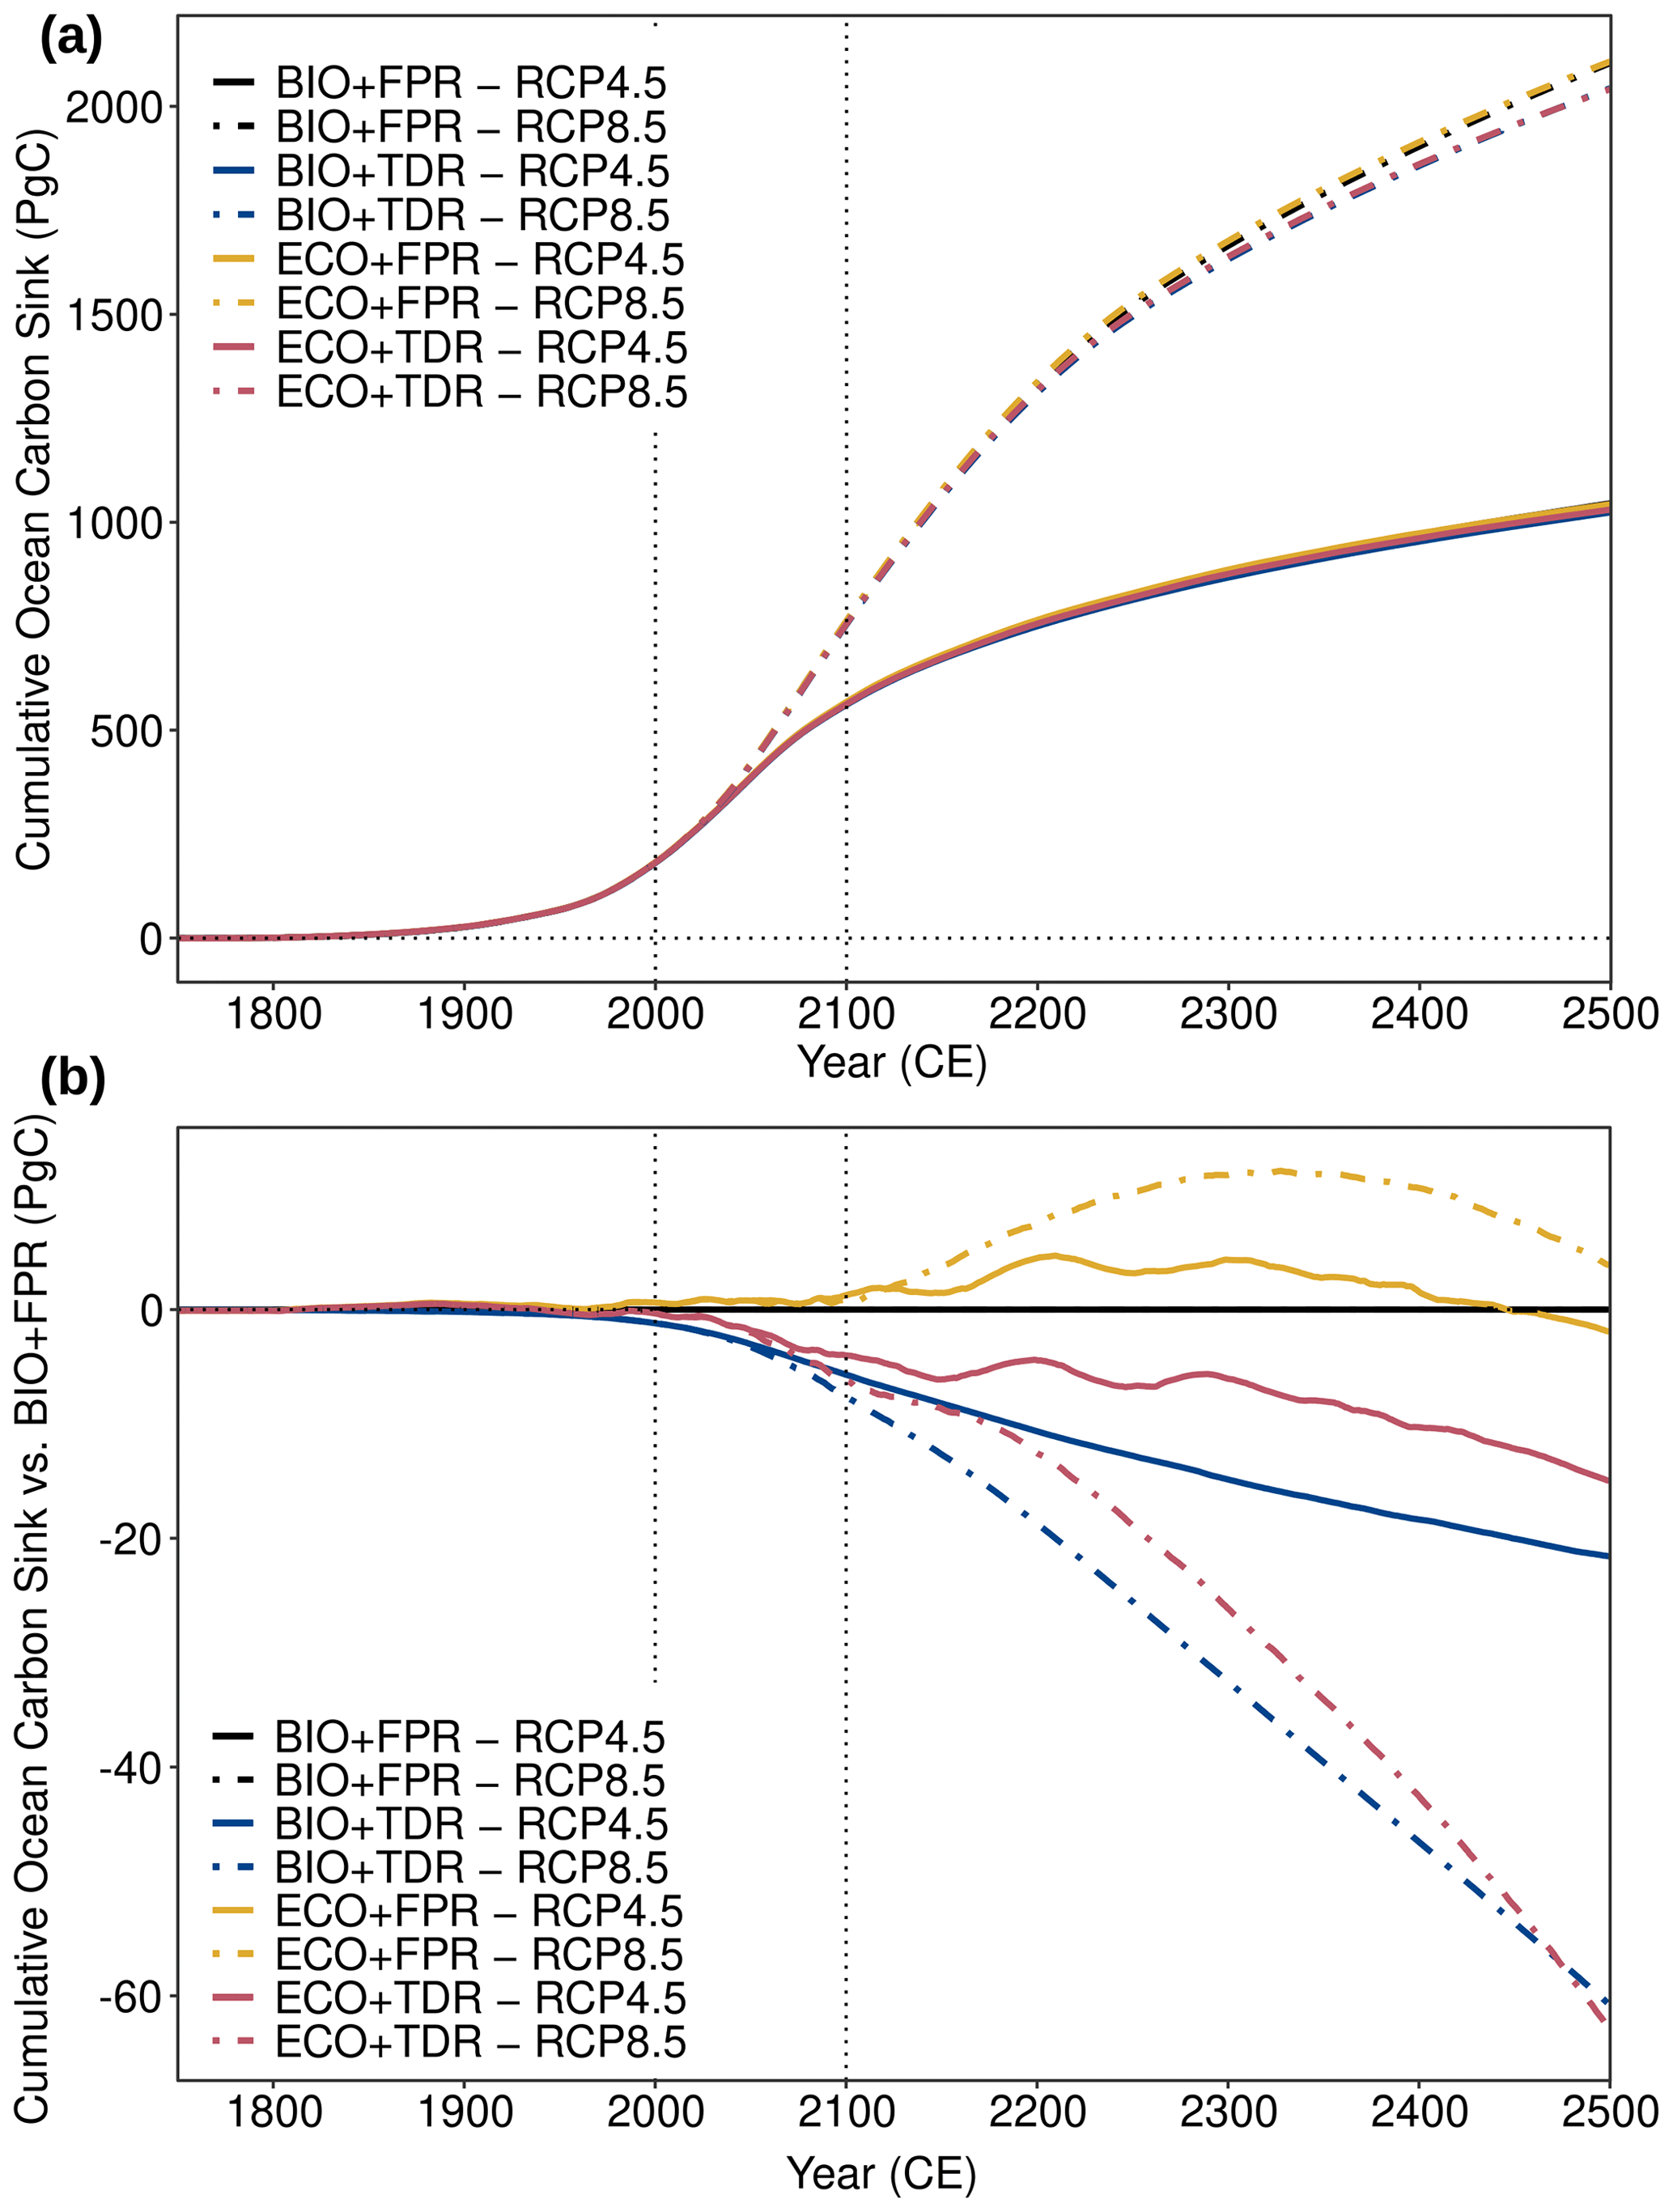 Graphs showing ecoGEnIE simulation results for the absolute cumulative ocean carbon sink and the cumulative ocean carbon sink relative to BIO+FPR under different configurations and forcing scenarios. Results for RCP4.5 and RCP8.5 are shown for each of the default calibration configurations (BIO+FPR, BIO+TDR, ECO+FPR, ECO+TDR). Adding TDR reduces the cumulative ocean carbon sink (-20 GtC by 2500 under RCP4.5, -40GtC under RCP8.5), adding ECO temporarily increases the sink (~0 GtC RCP4.5, +5GtC RCP8.5), and ECO+TDR results in an overall decrease in the sink (-15 GtC RCP4.5, -40 GtC RCP8.5).